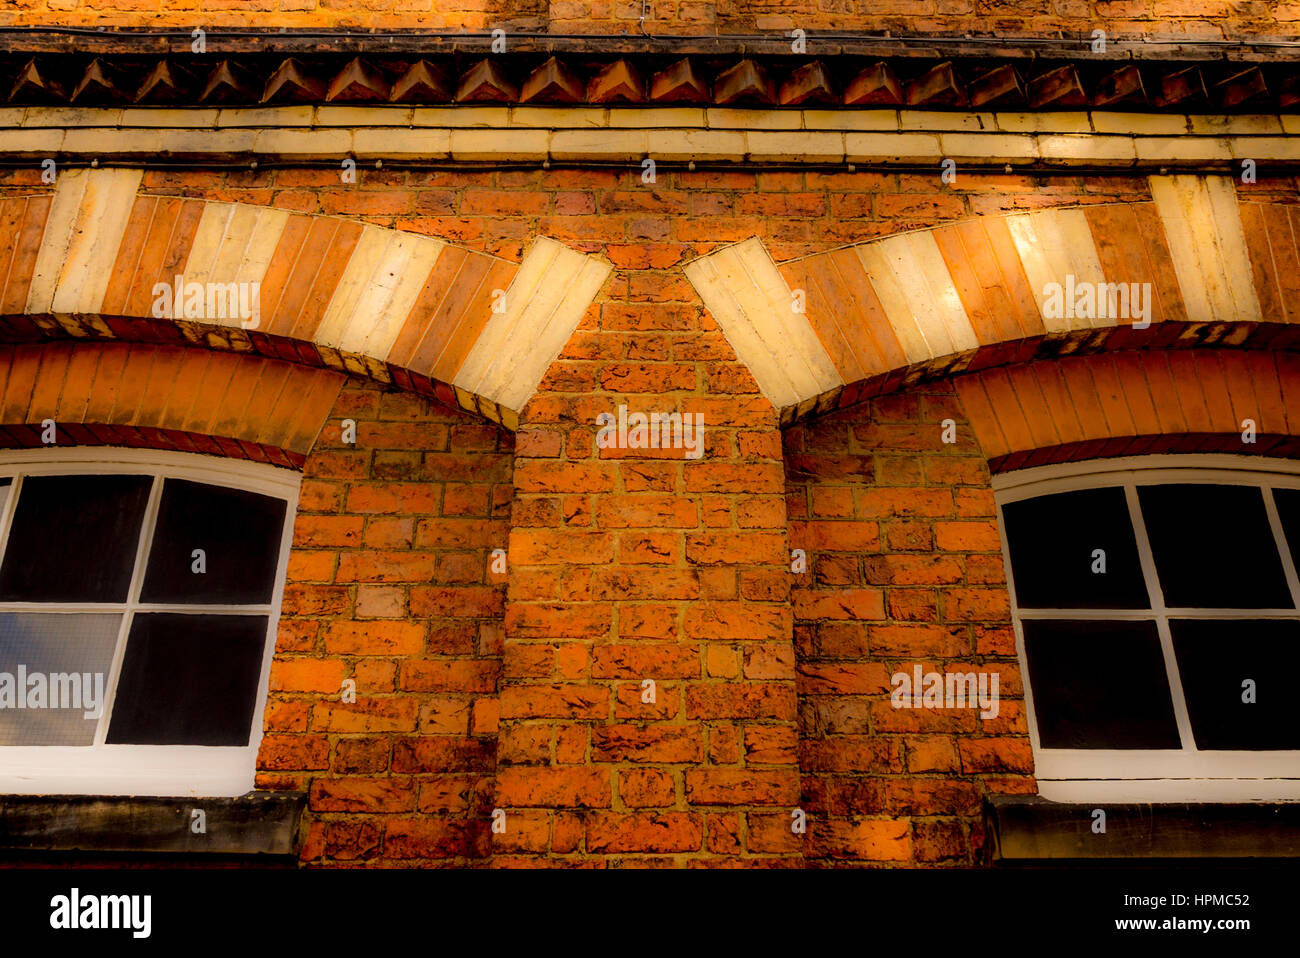 Architectural detail in brickwork on Clock Tower building, Easingwold, Yorkshire, UK. - Stock Image